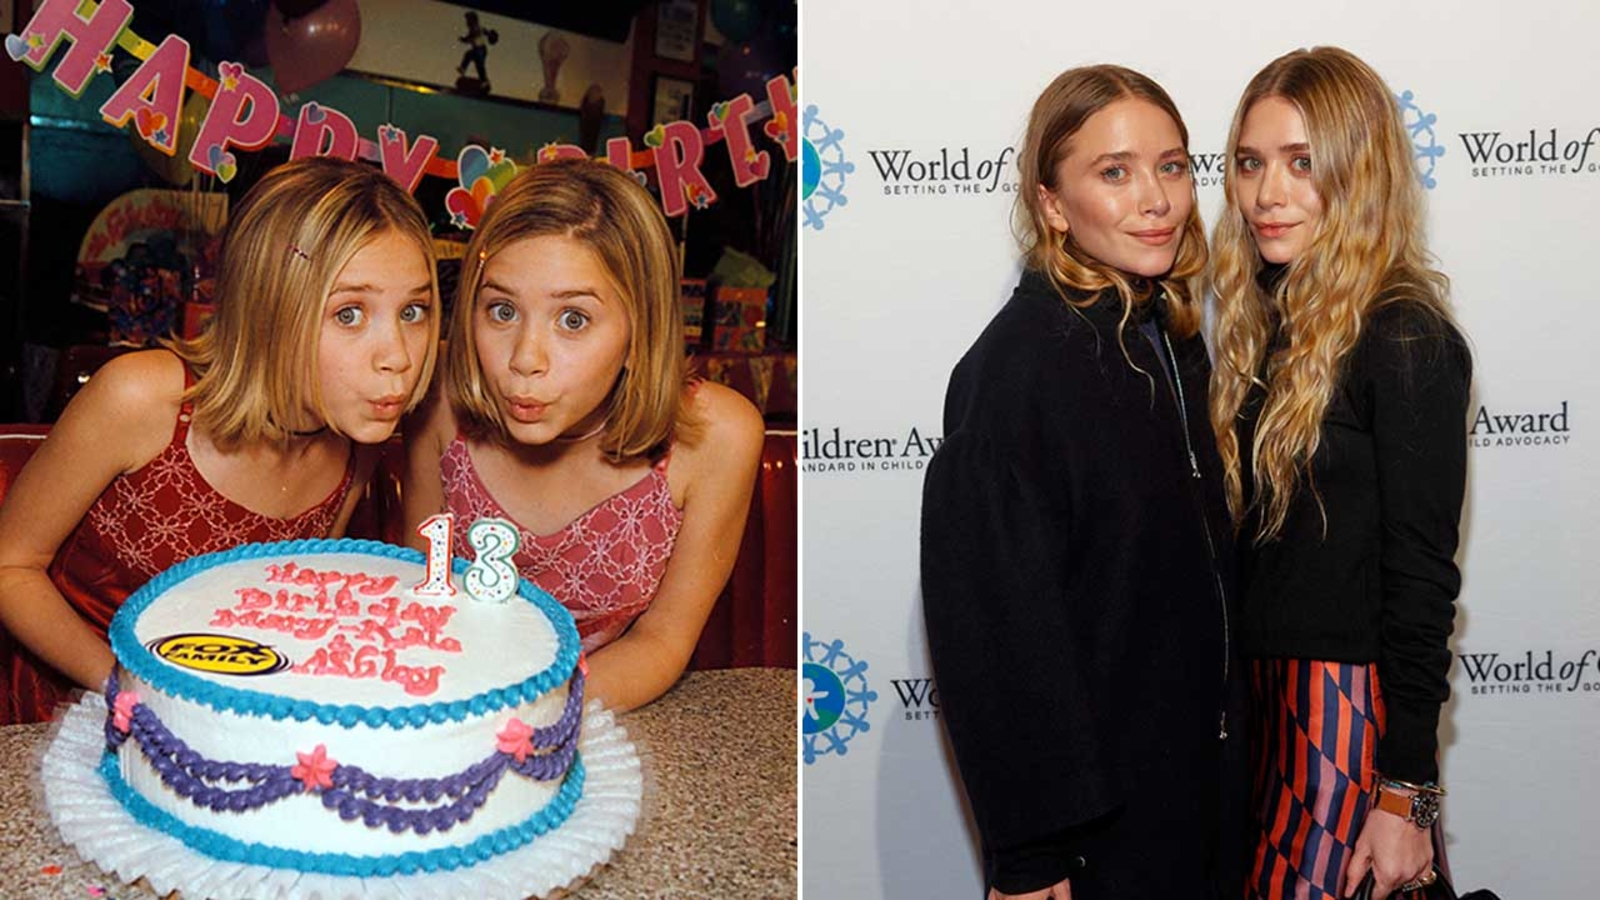 PHOTOS: The cast of 'Full House' 20 years later | abc11.com Cast Of Full House Then And Now Pictures